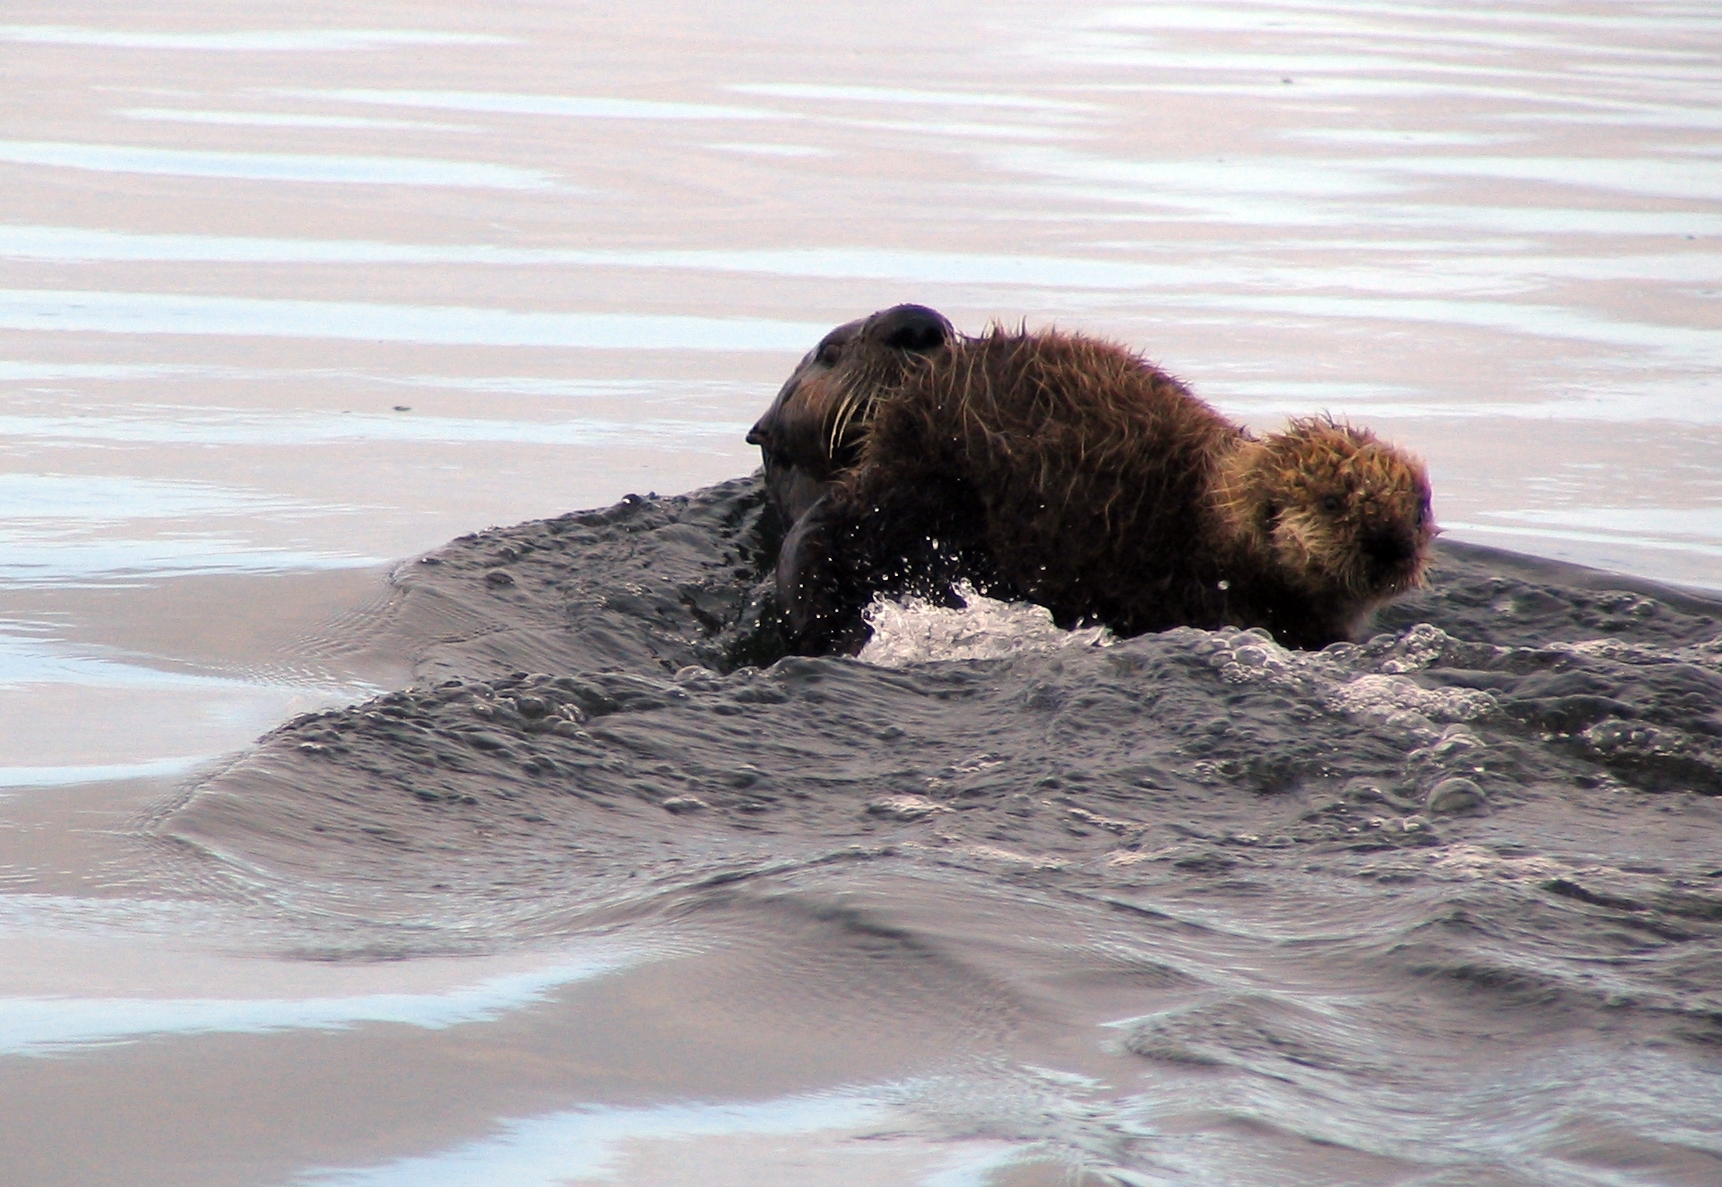 Mother Sea Otter Pushes through the Water Carrying Precious Cargo